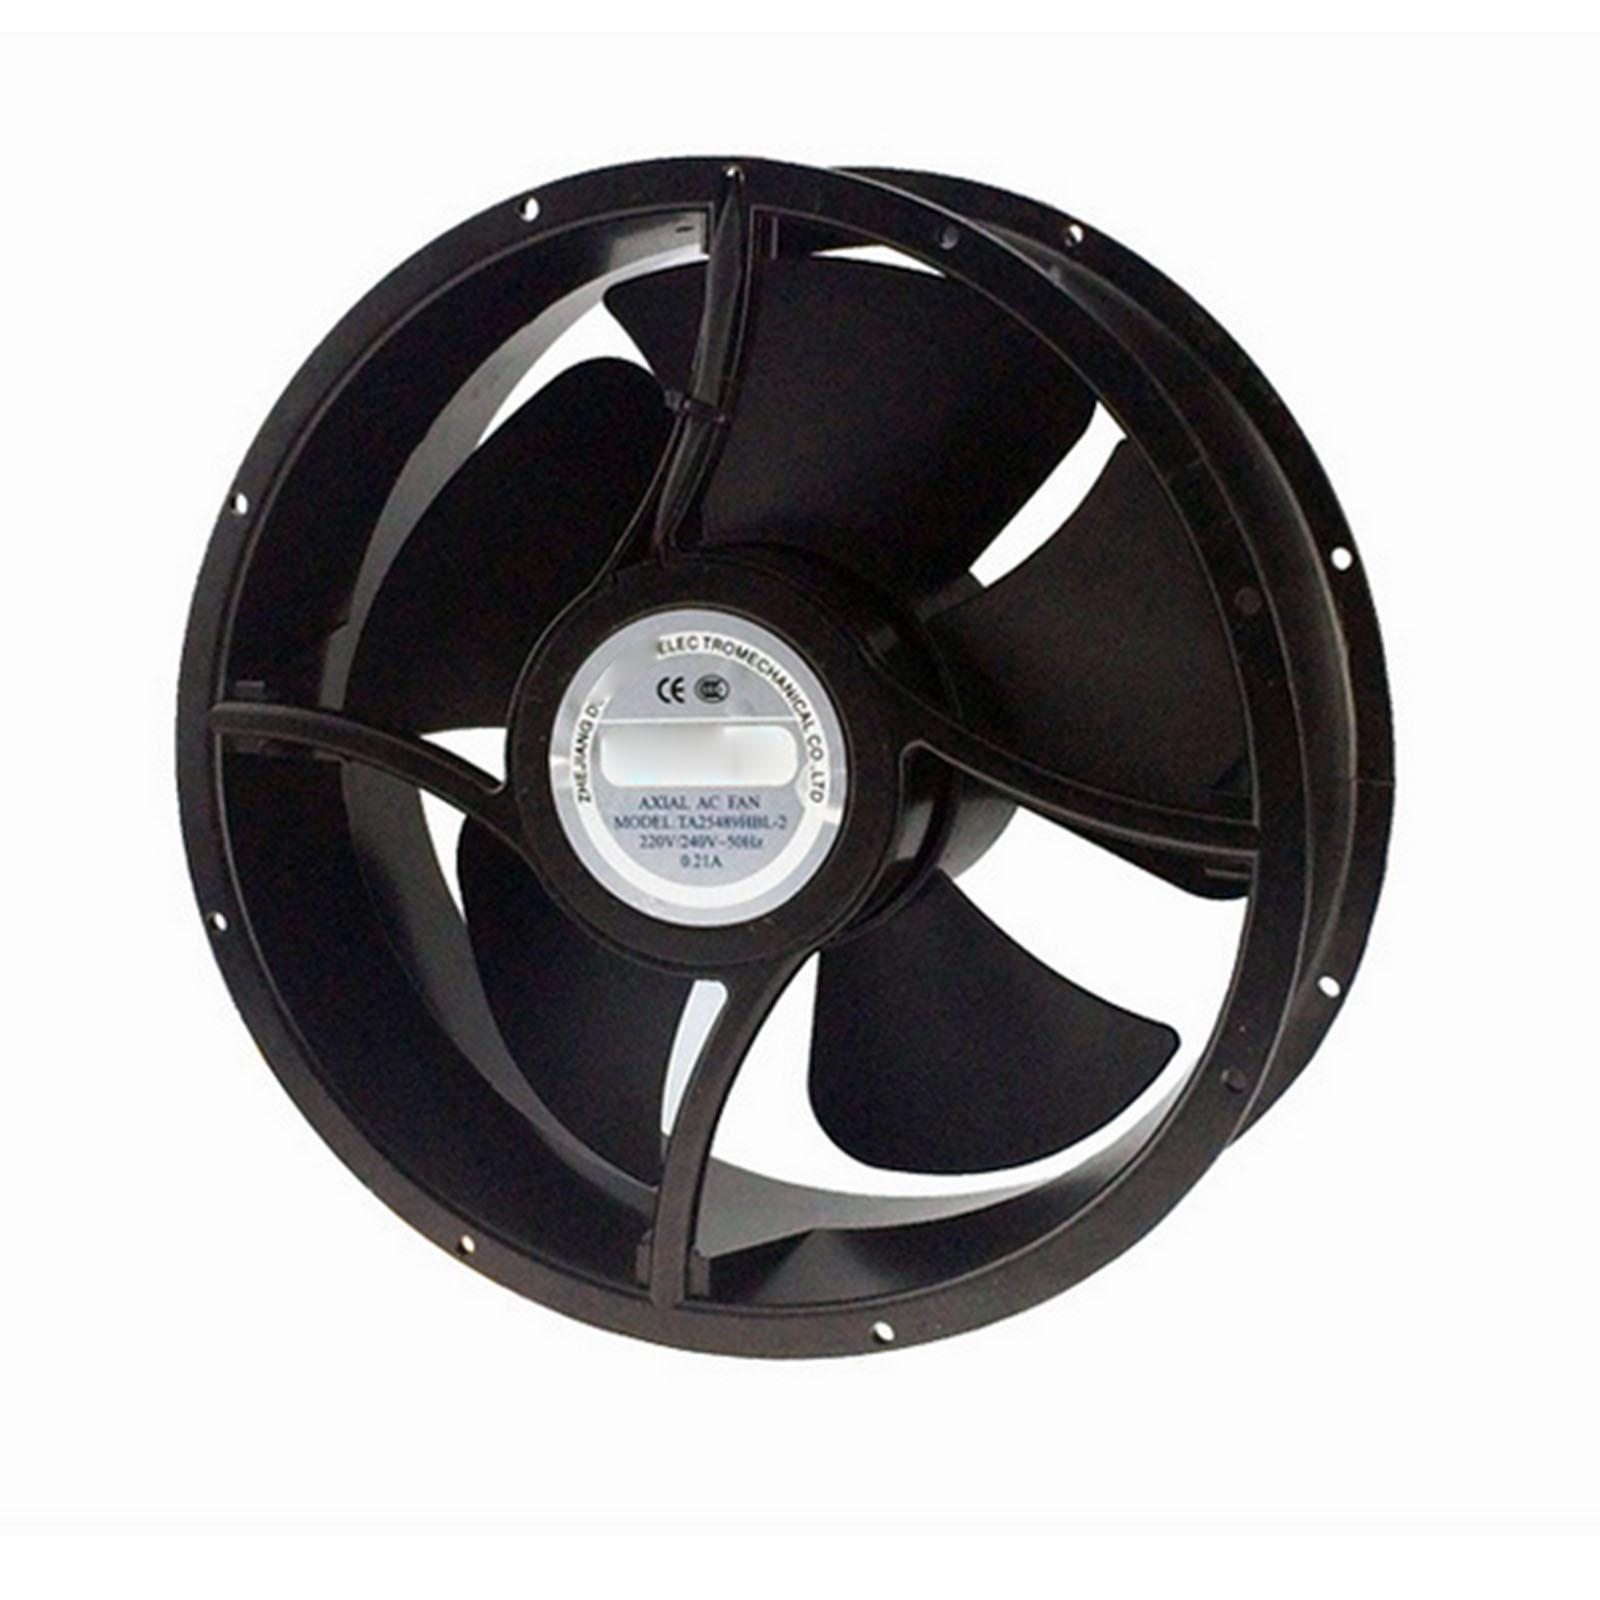 220V AC 254x89mm Round Axial Radiator Fan 860CFM 2600RPM Ball Bearing High Speed цена 2017